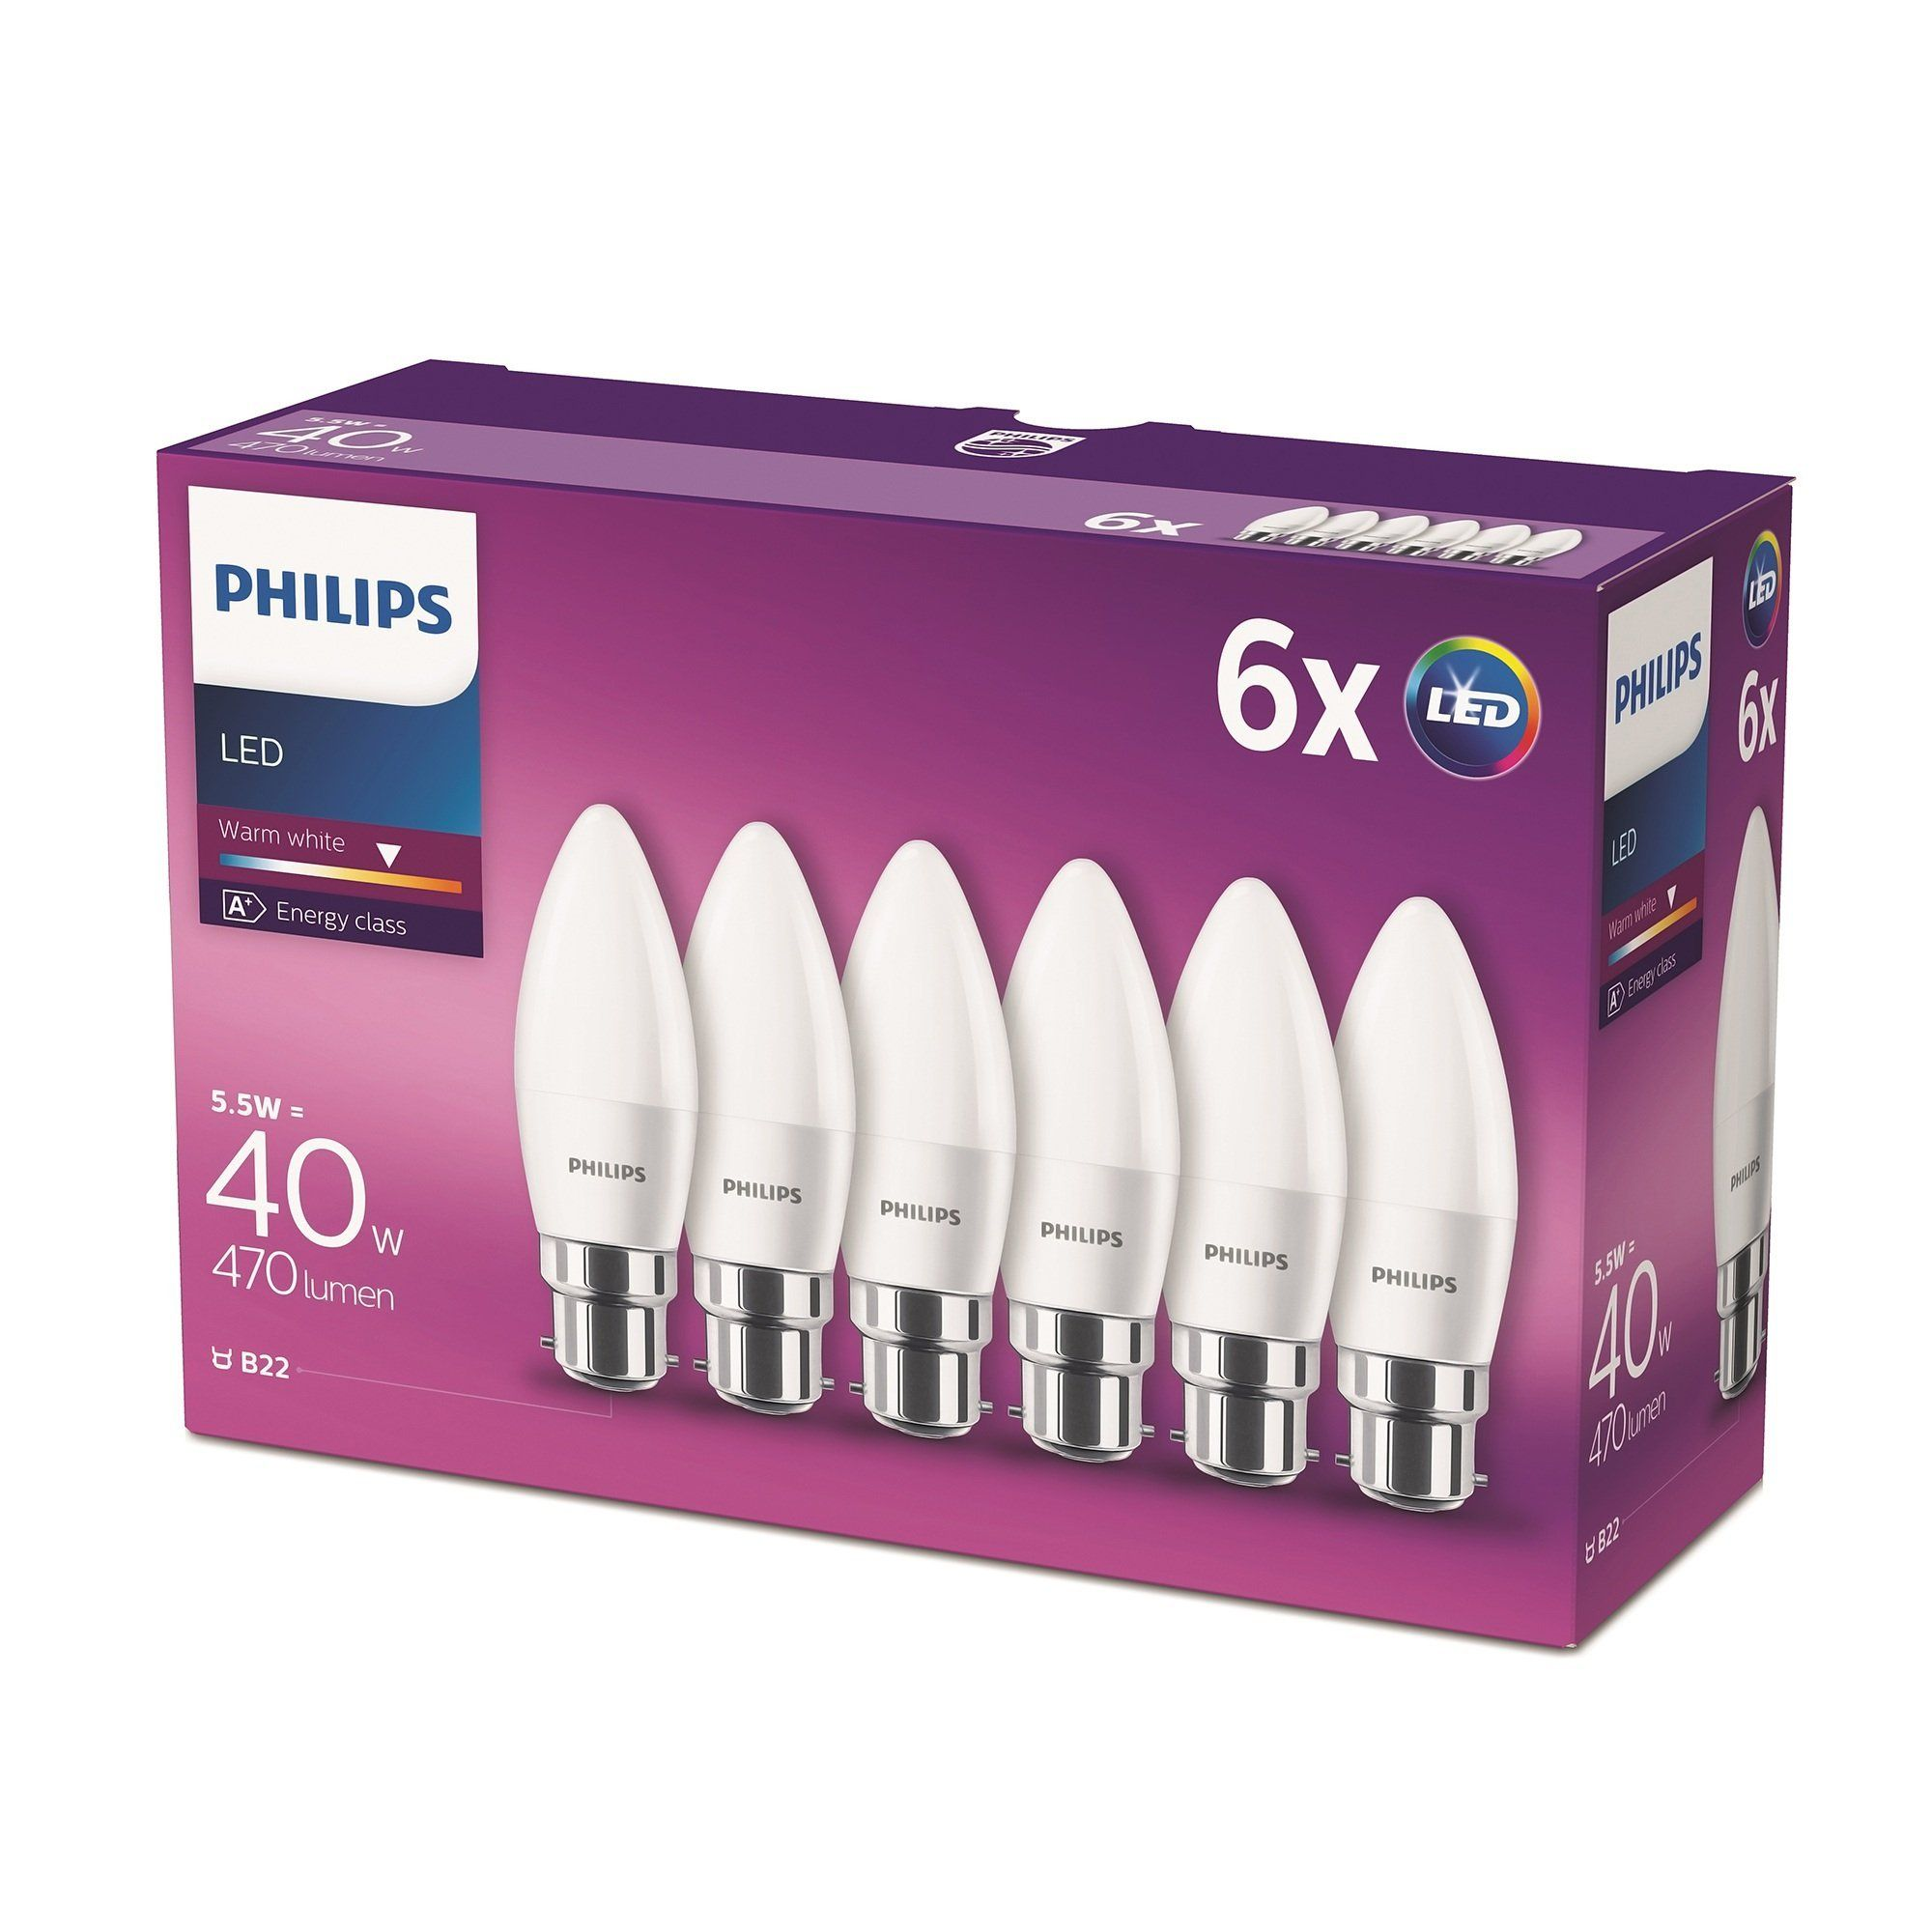 Philips Led B22 Bayonet Cap Candle Light Bulb Frosted 5 5 W 40 W Warm White Pack Of 6 High Quality L Light Bulb Candle Led Candle Lights Philips Led